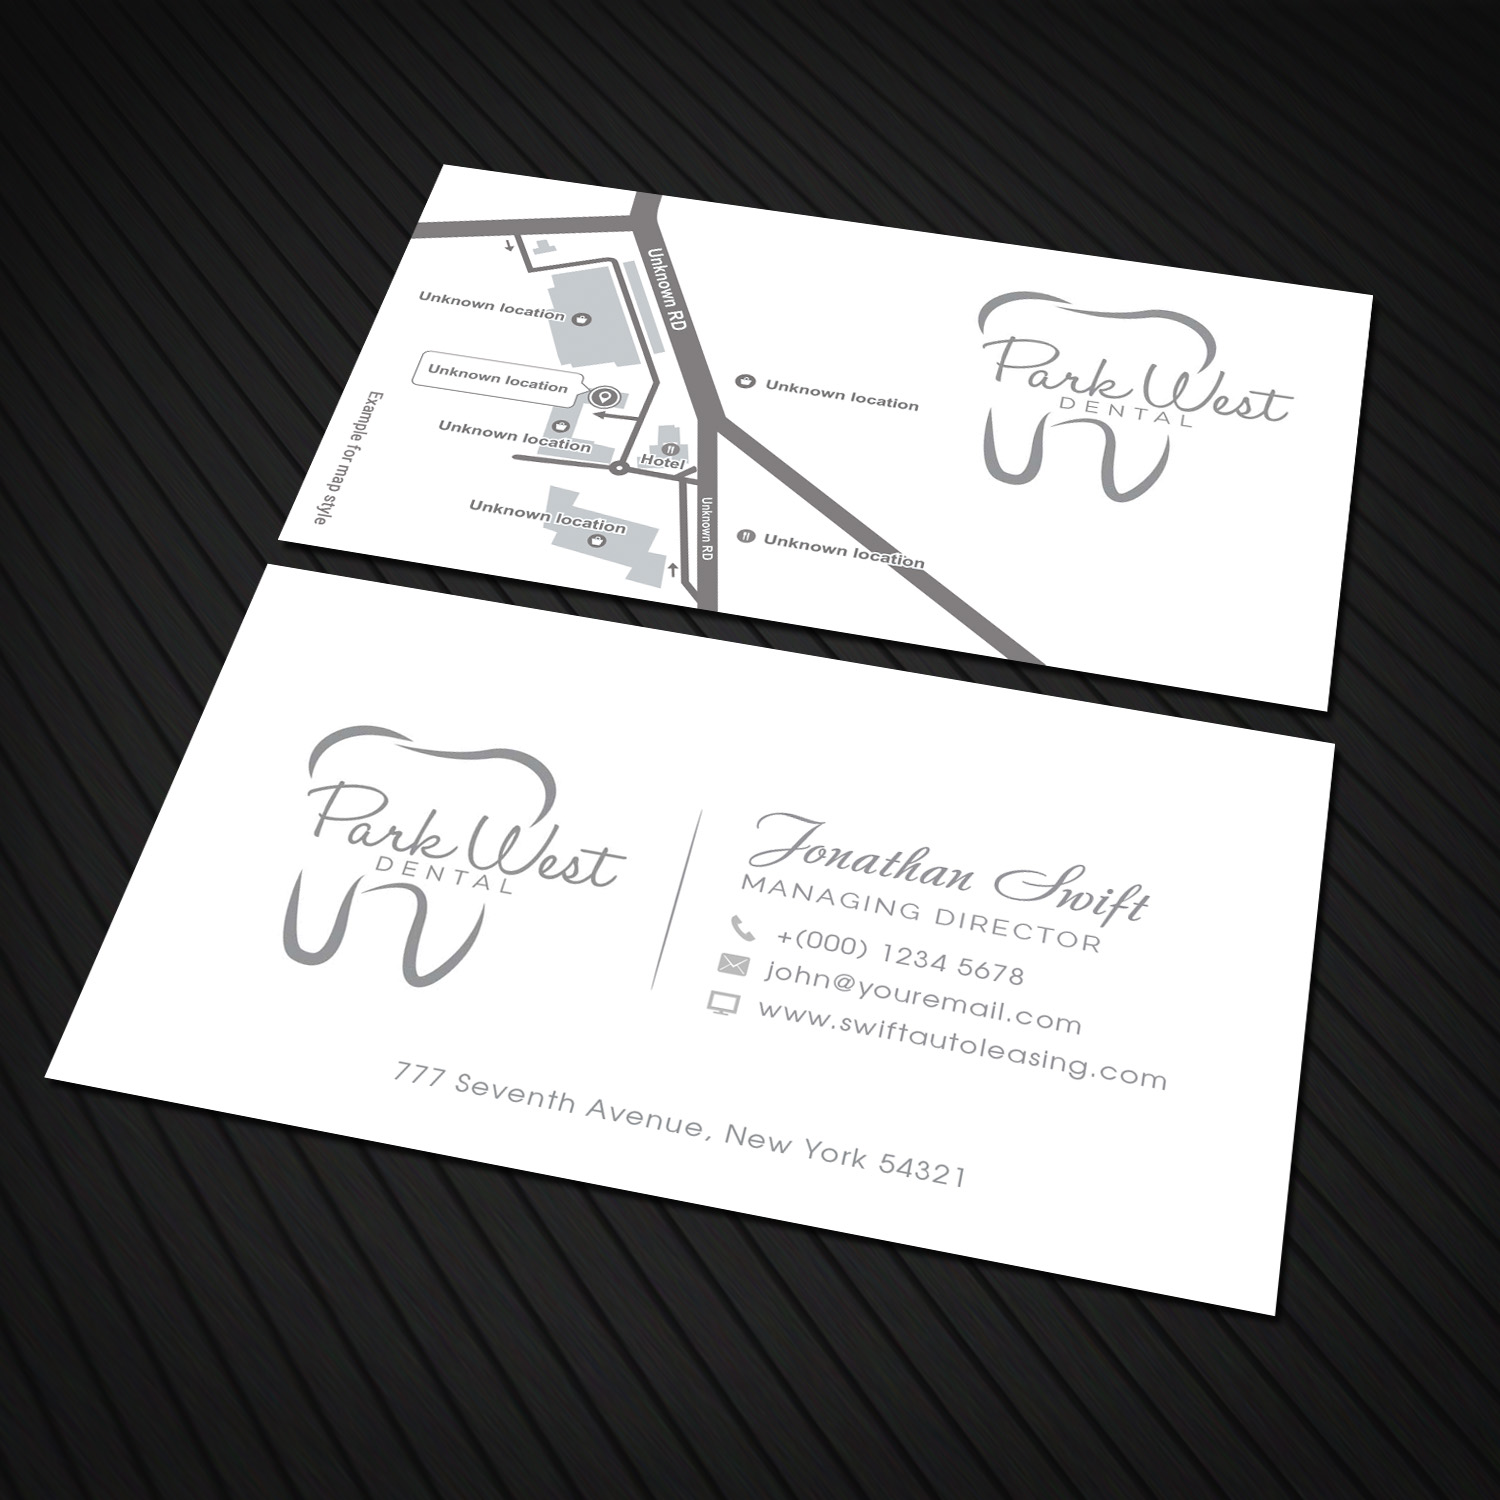 Business business card design for san diego dental studio by business business card design for san diego dental studio in united states design 15419386 colourmoves